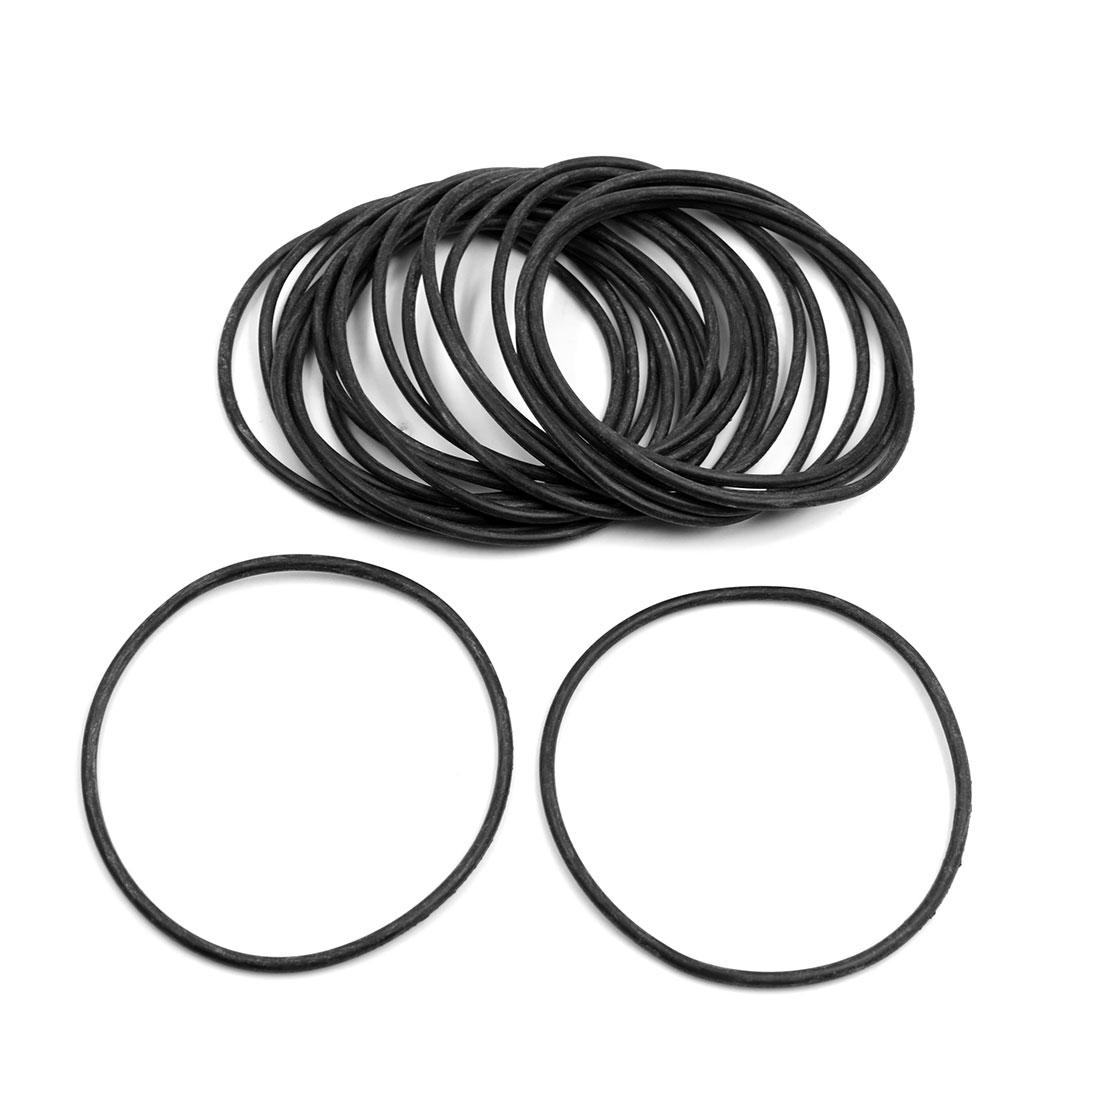 20pcs Black Universal Nitrile Rubber O-Ring Seals Gasket for Car 97.5 x 3.55mm